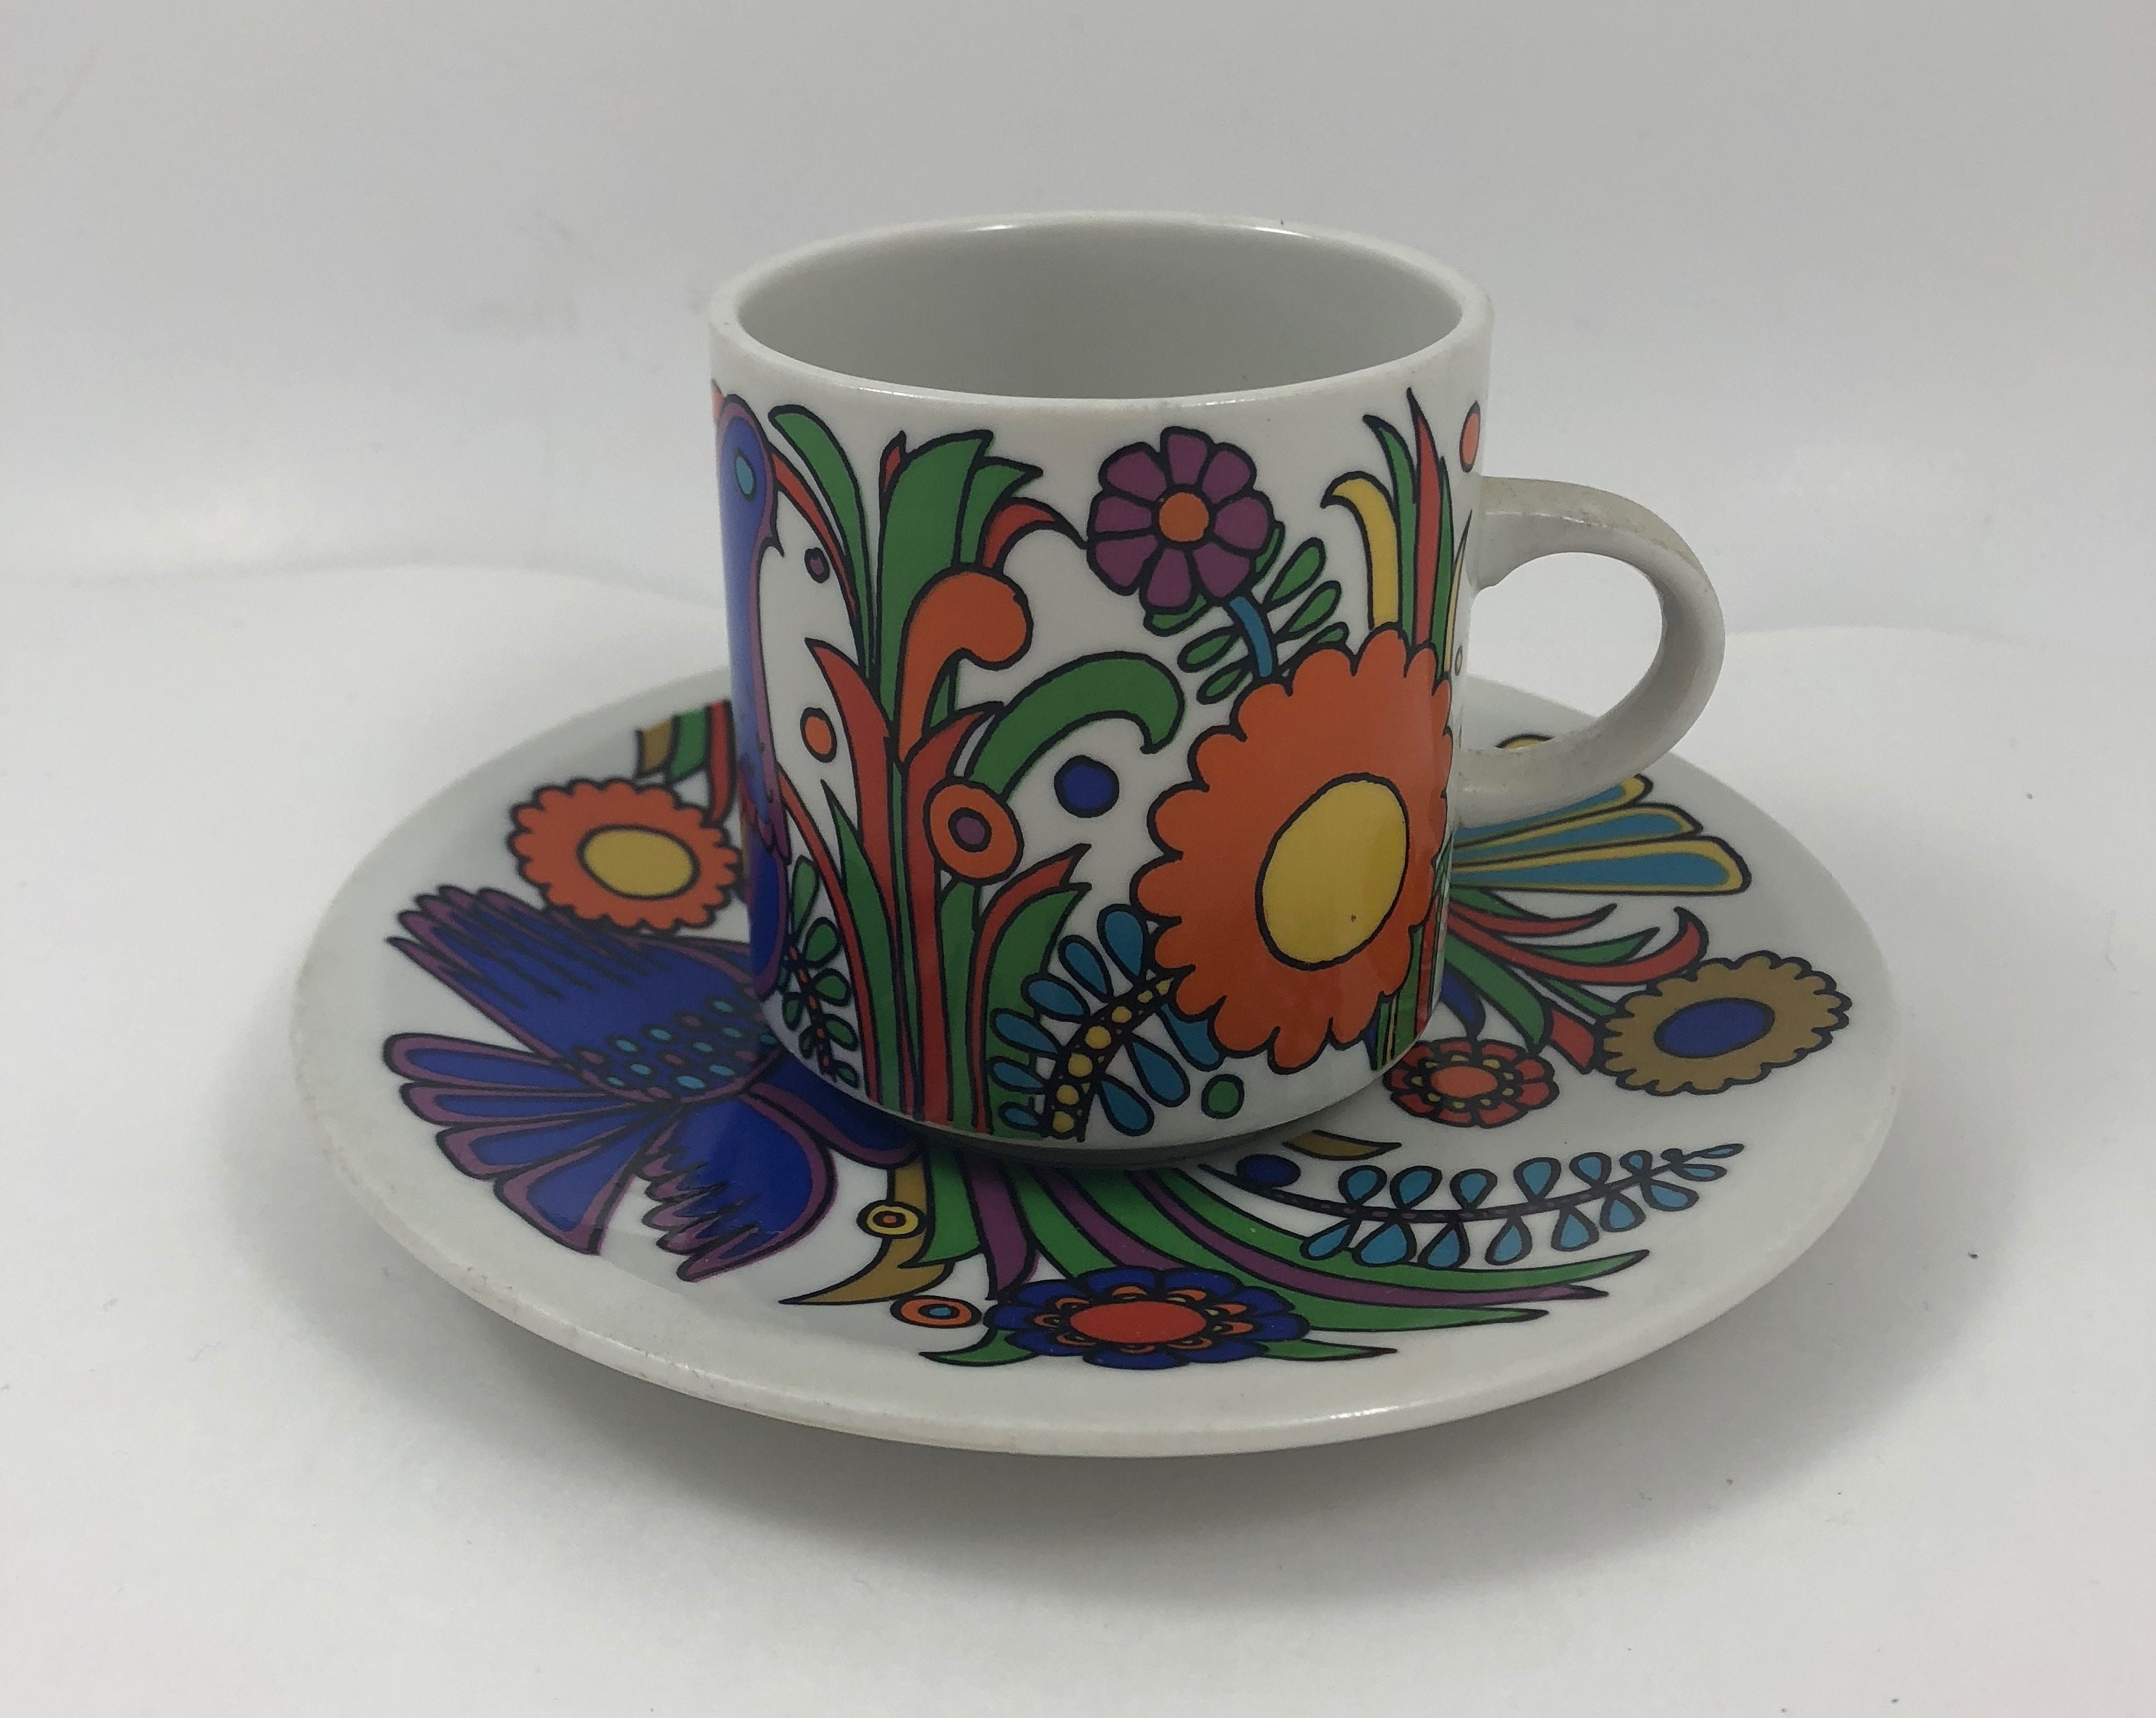 Piastrelle Villeroy Boch.Vintage Villeroy Boch Acapulco Coffee Cup And Saucer Etsy